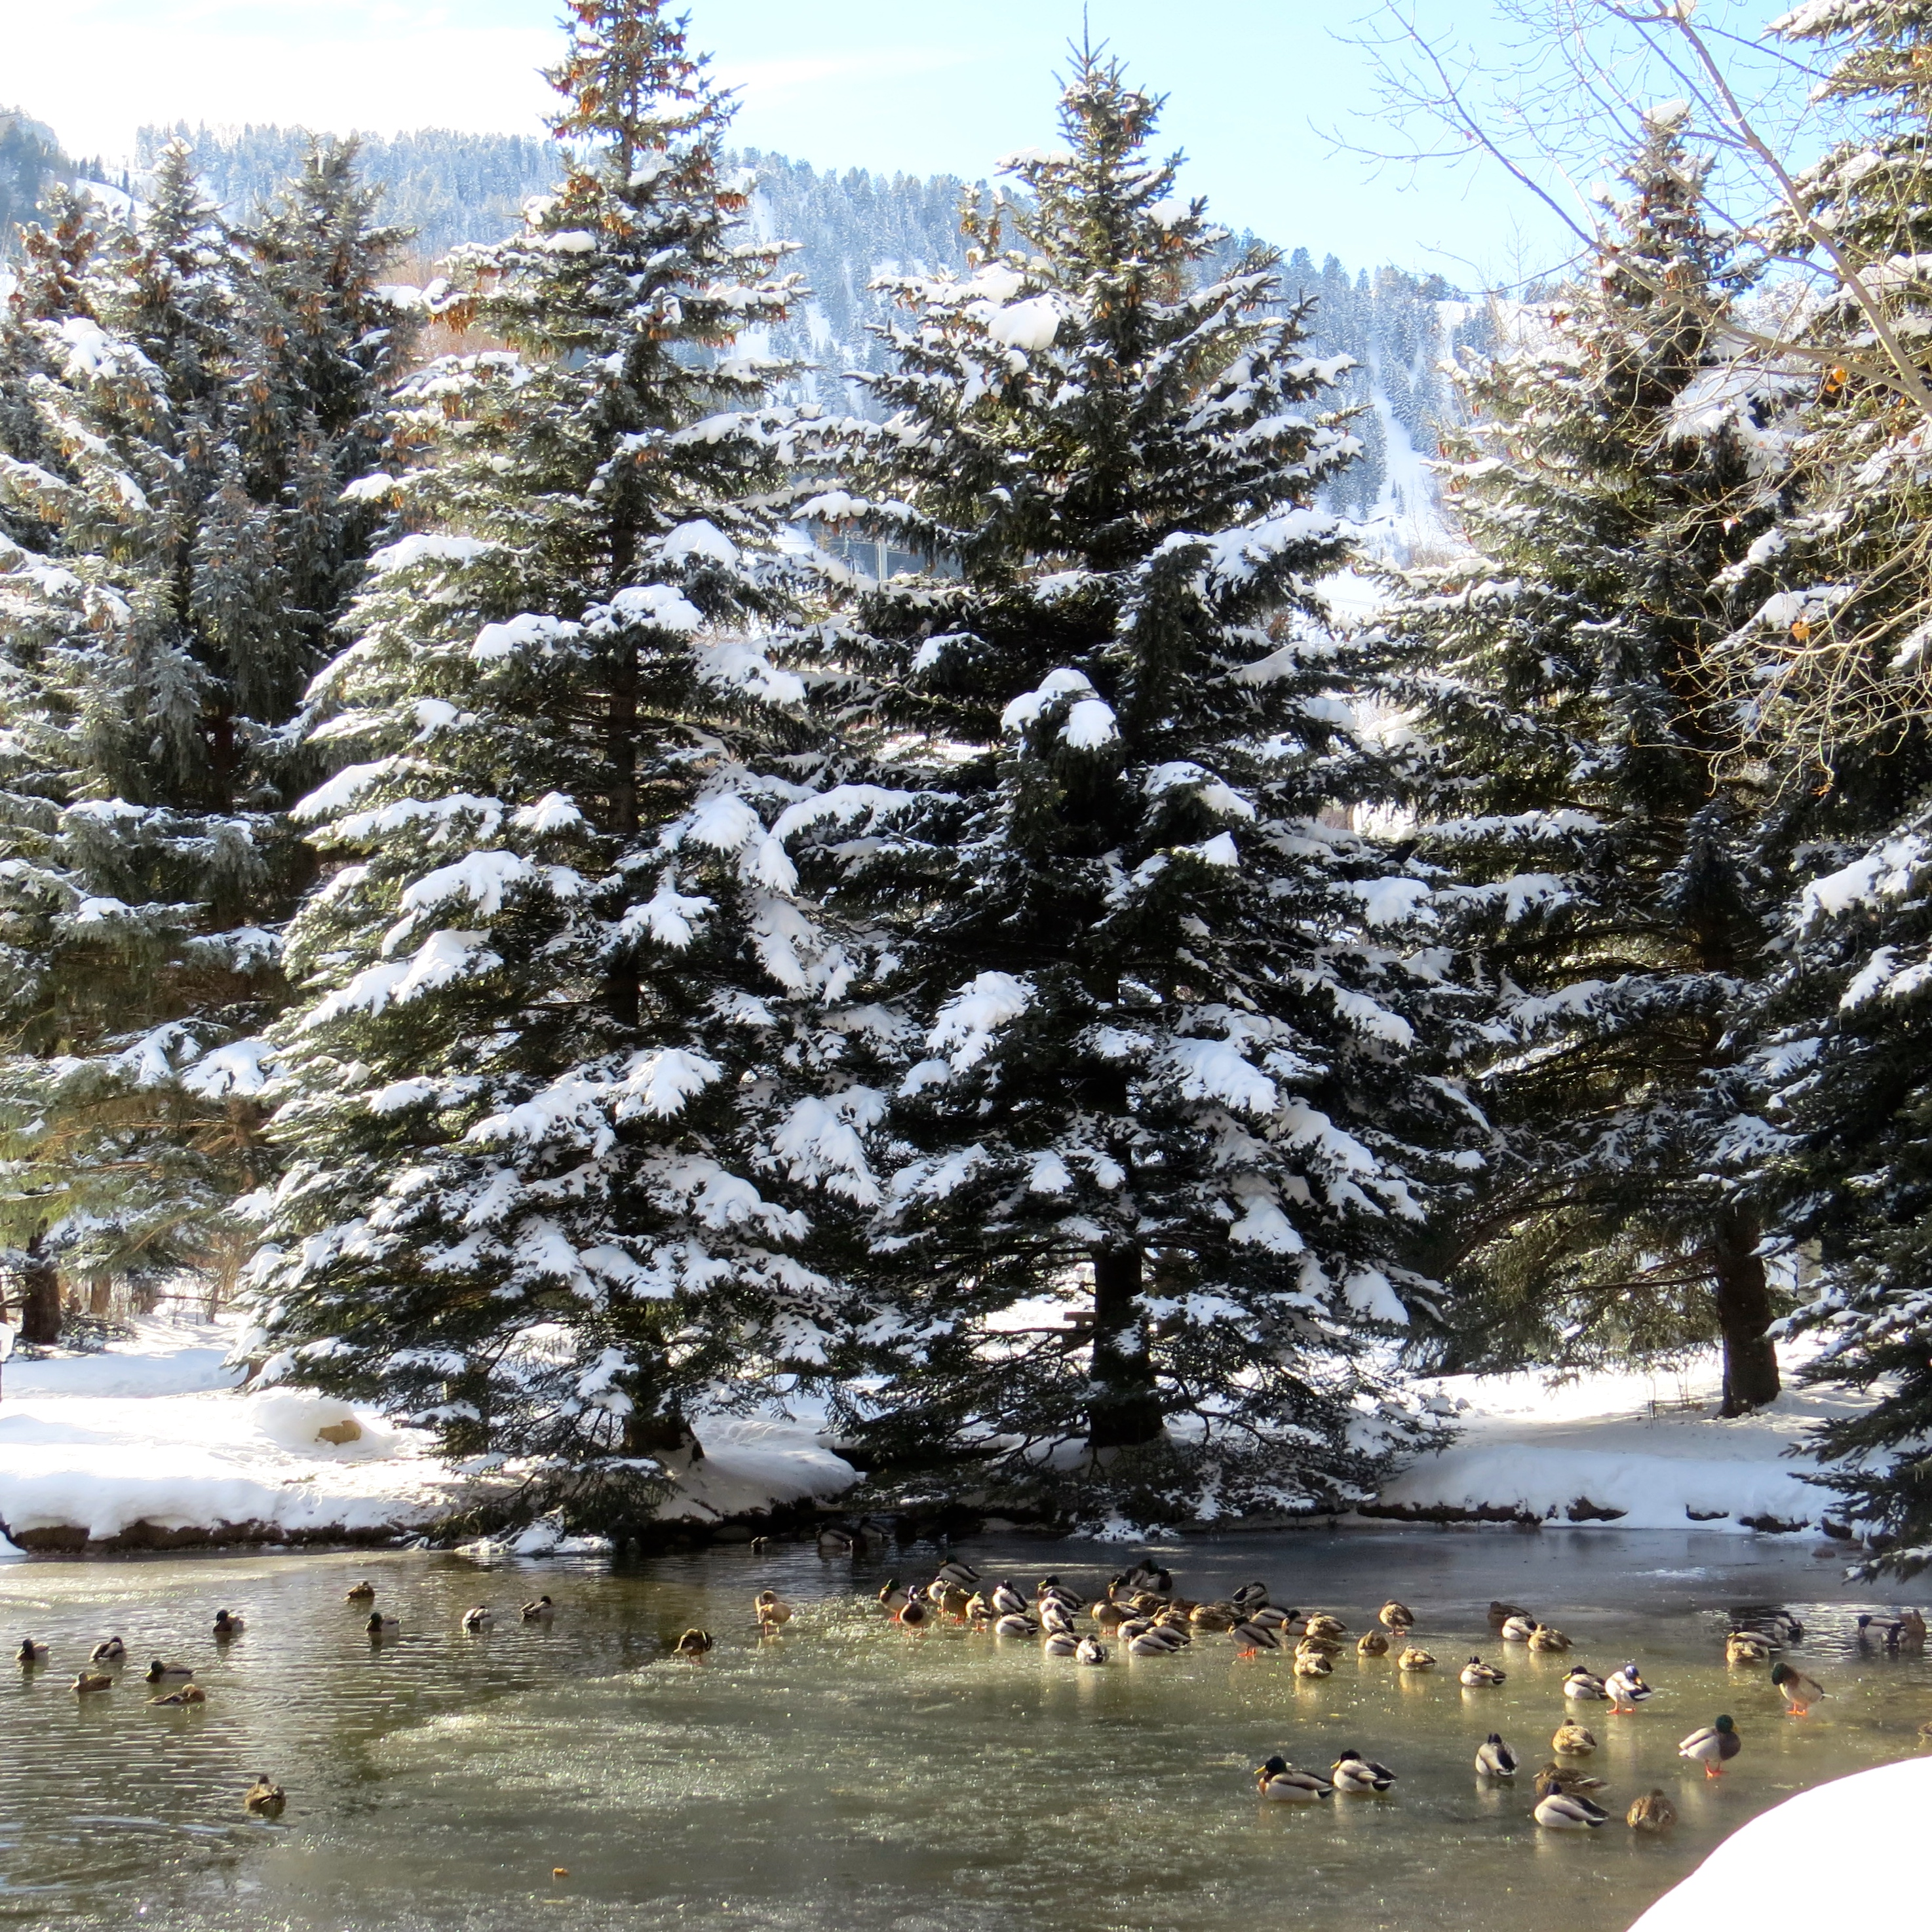 Happy Holidays from Glory Hole in Aspen, near the base of Ajax Mountain. Hoping you get all your ducks in a row to welcome in the New Year.